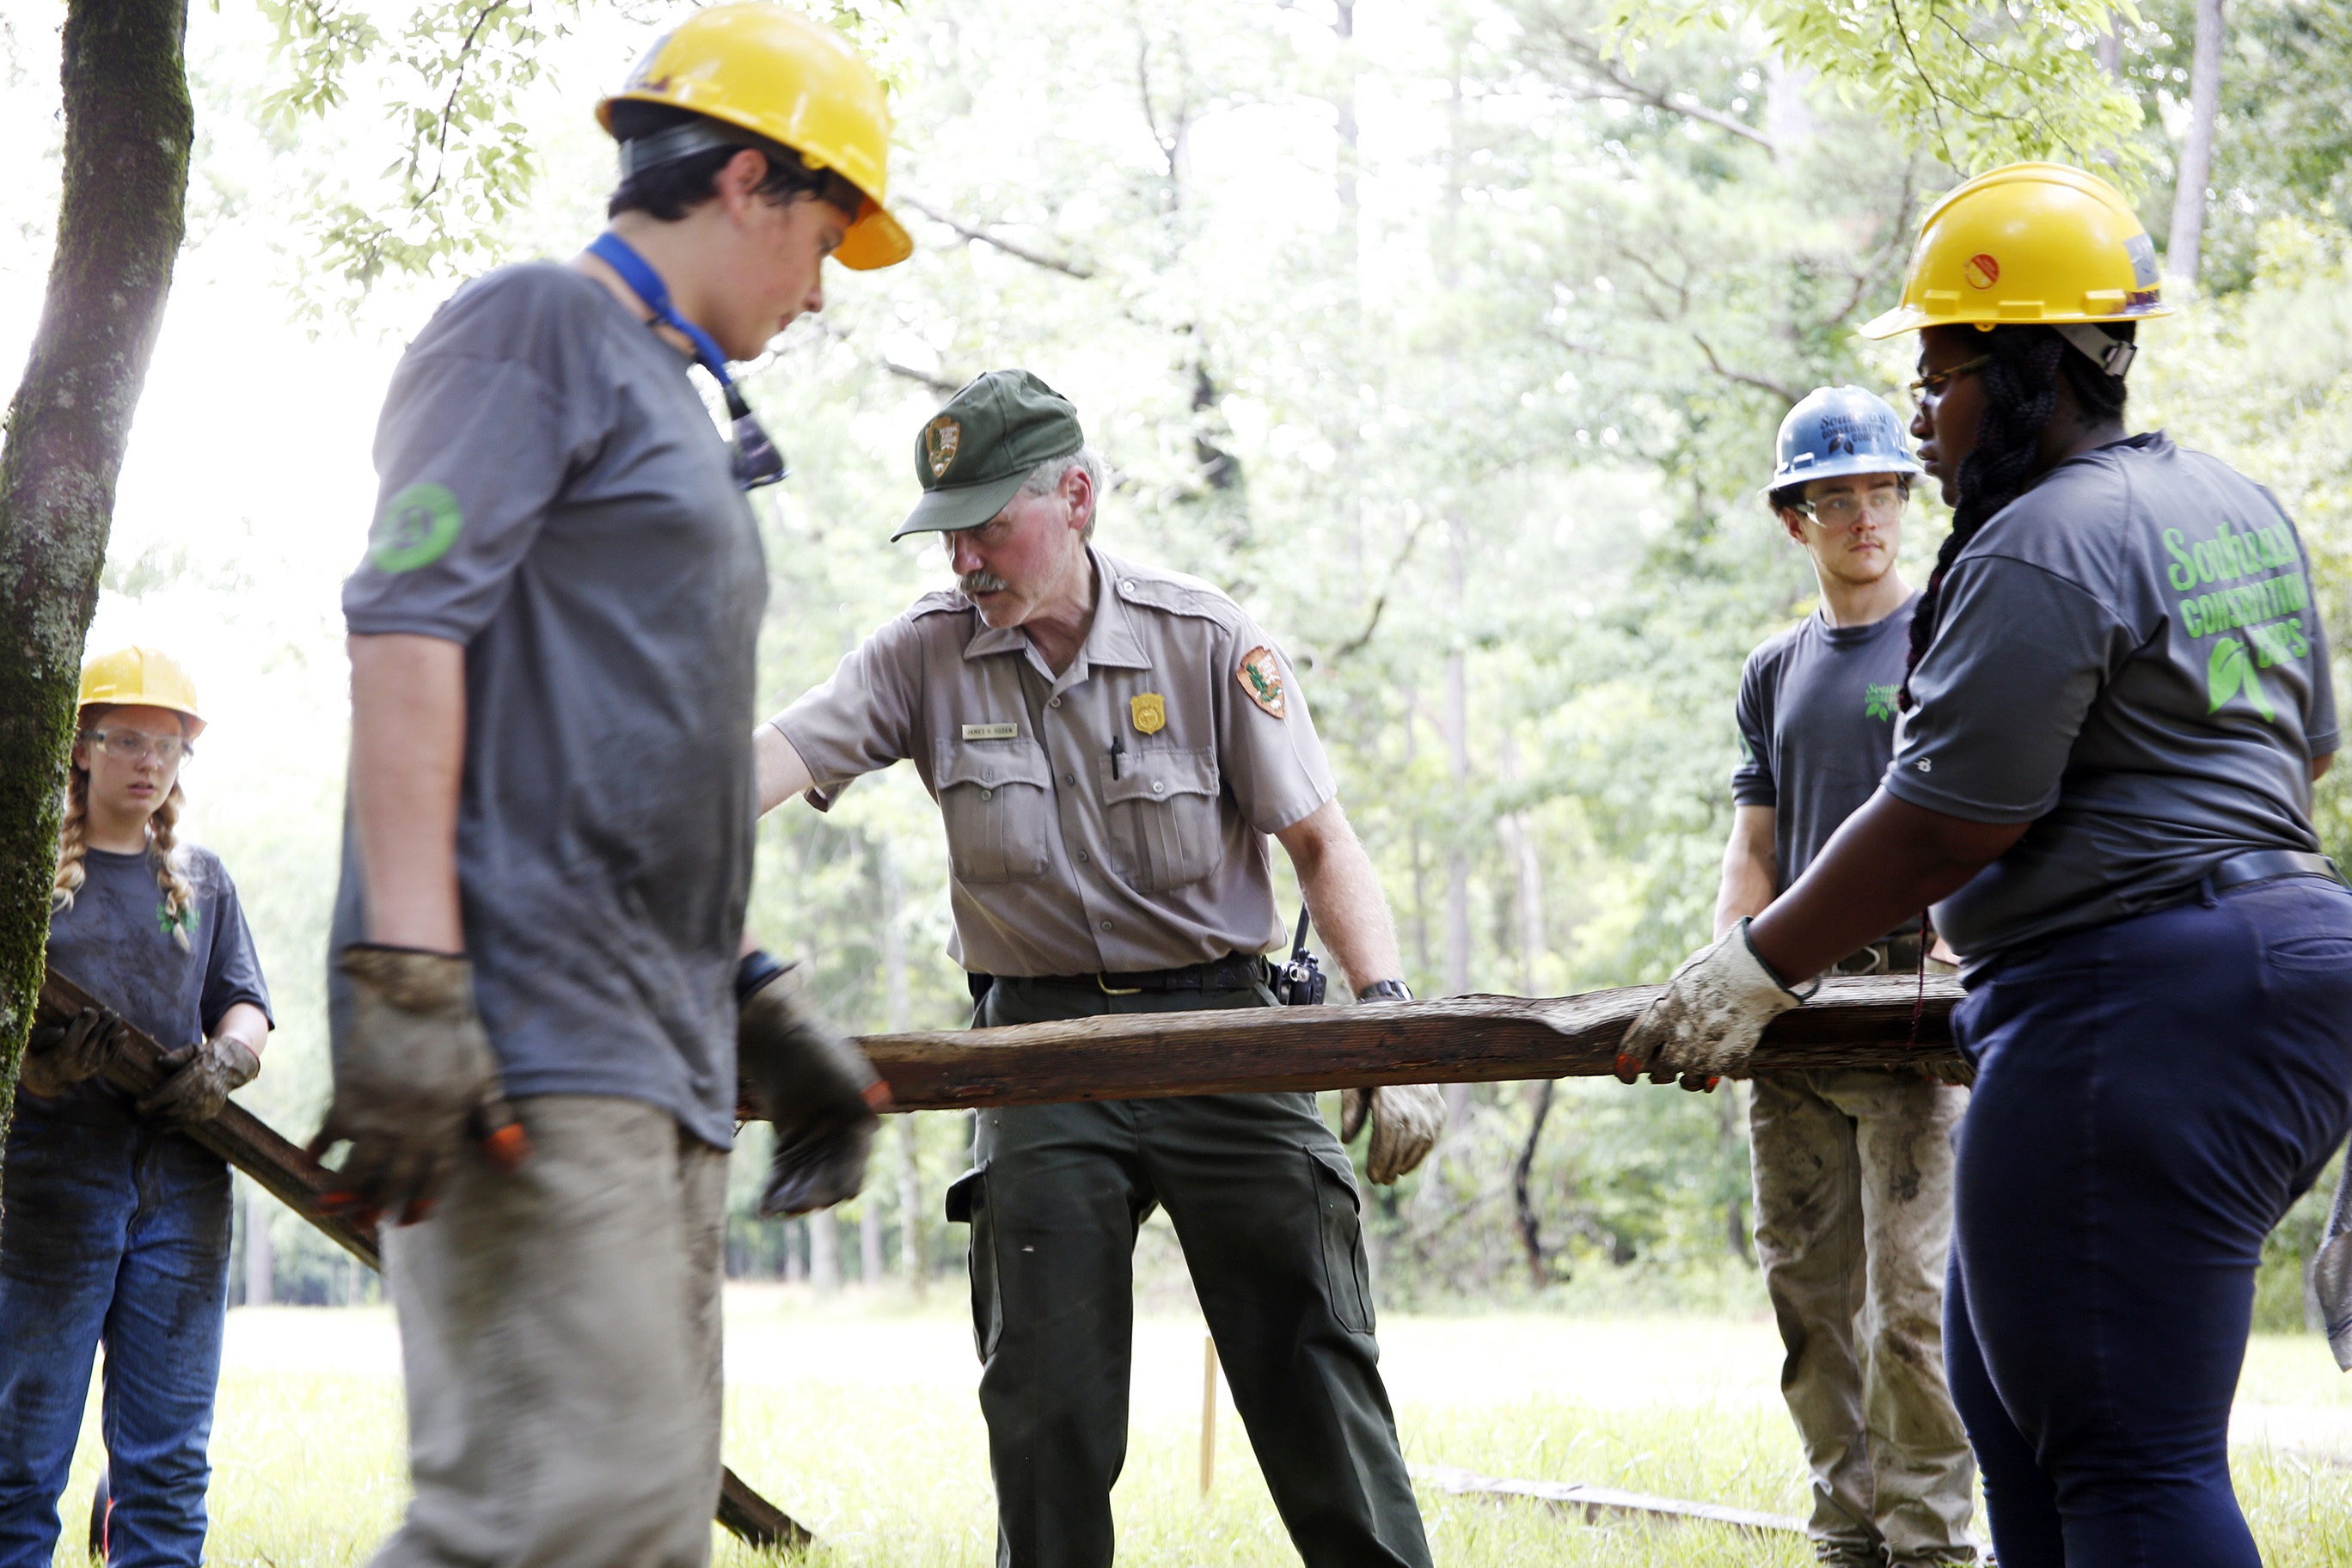 Youth-Crew-working-with-NPS-staff.jpg#asset:425